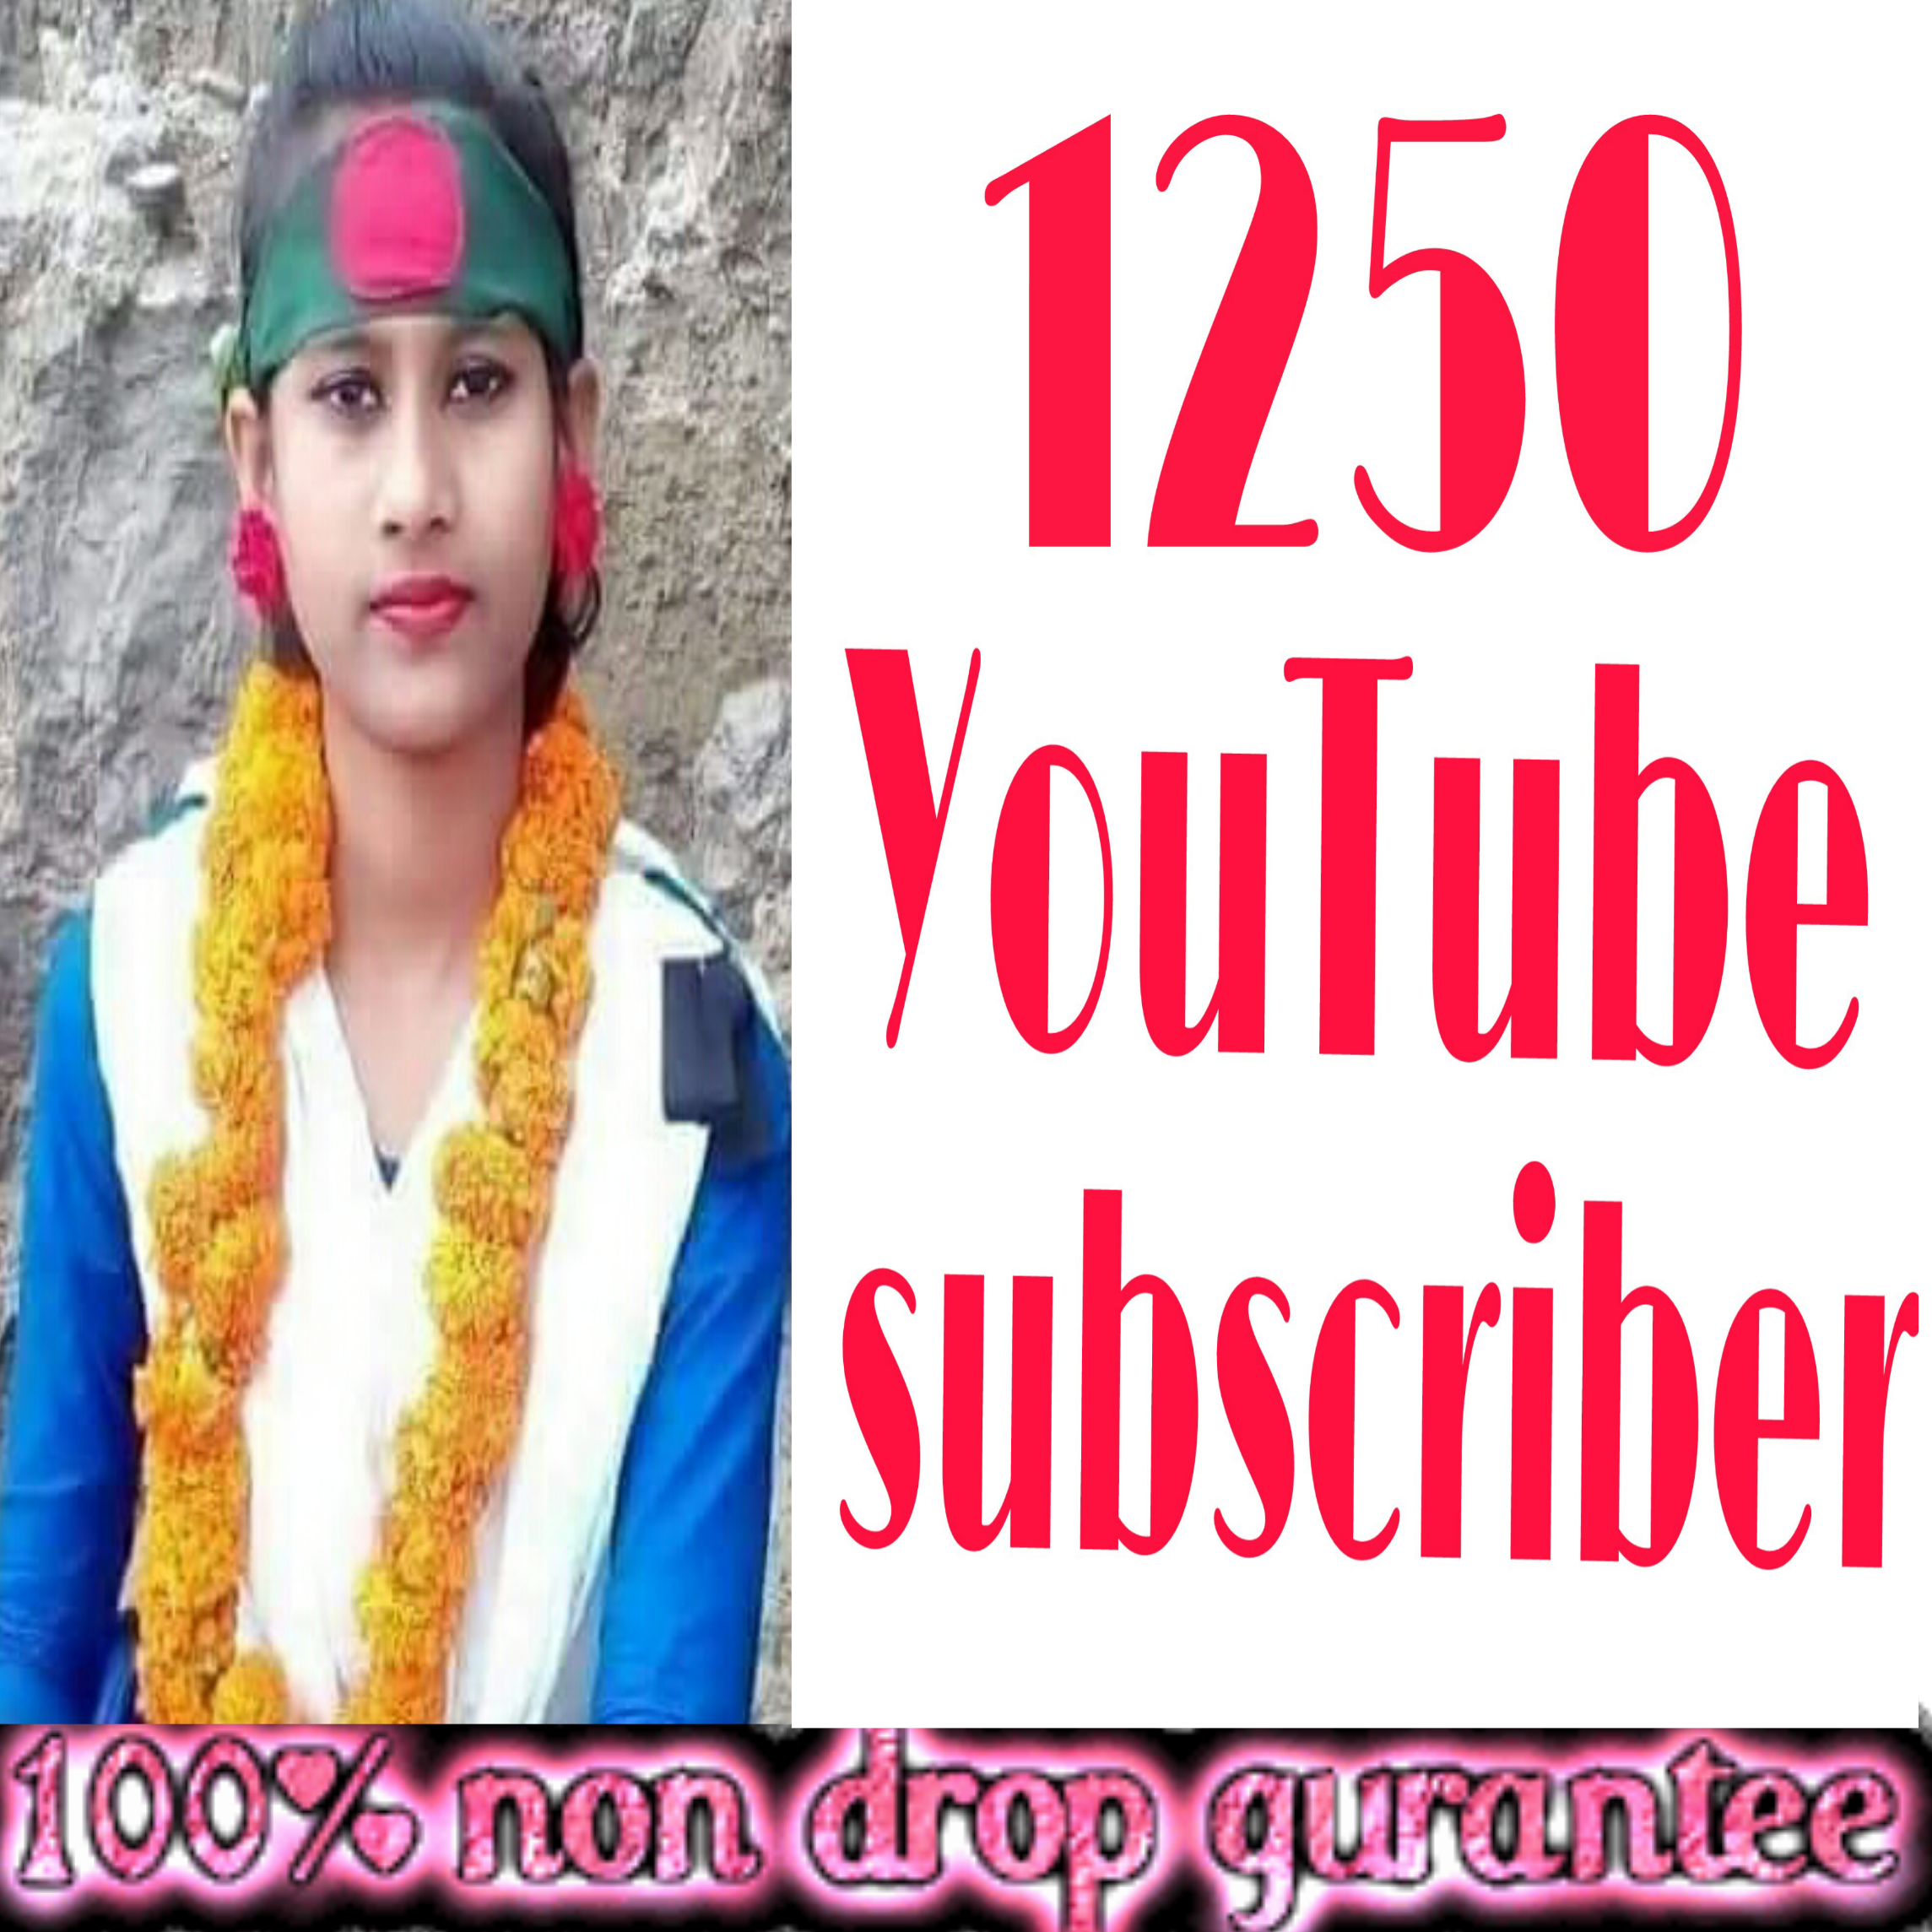 Instant Add safe 1250 YouTube channel subscriber non drop Guaranteed  super fast in 2-8 hours